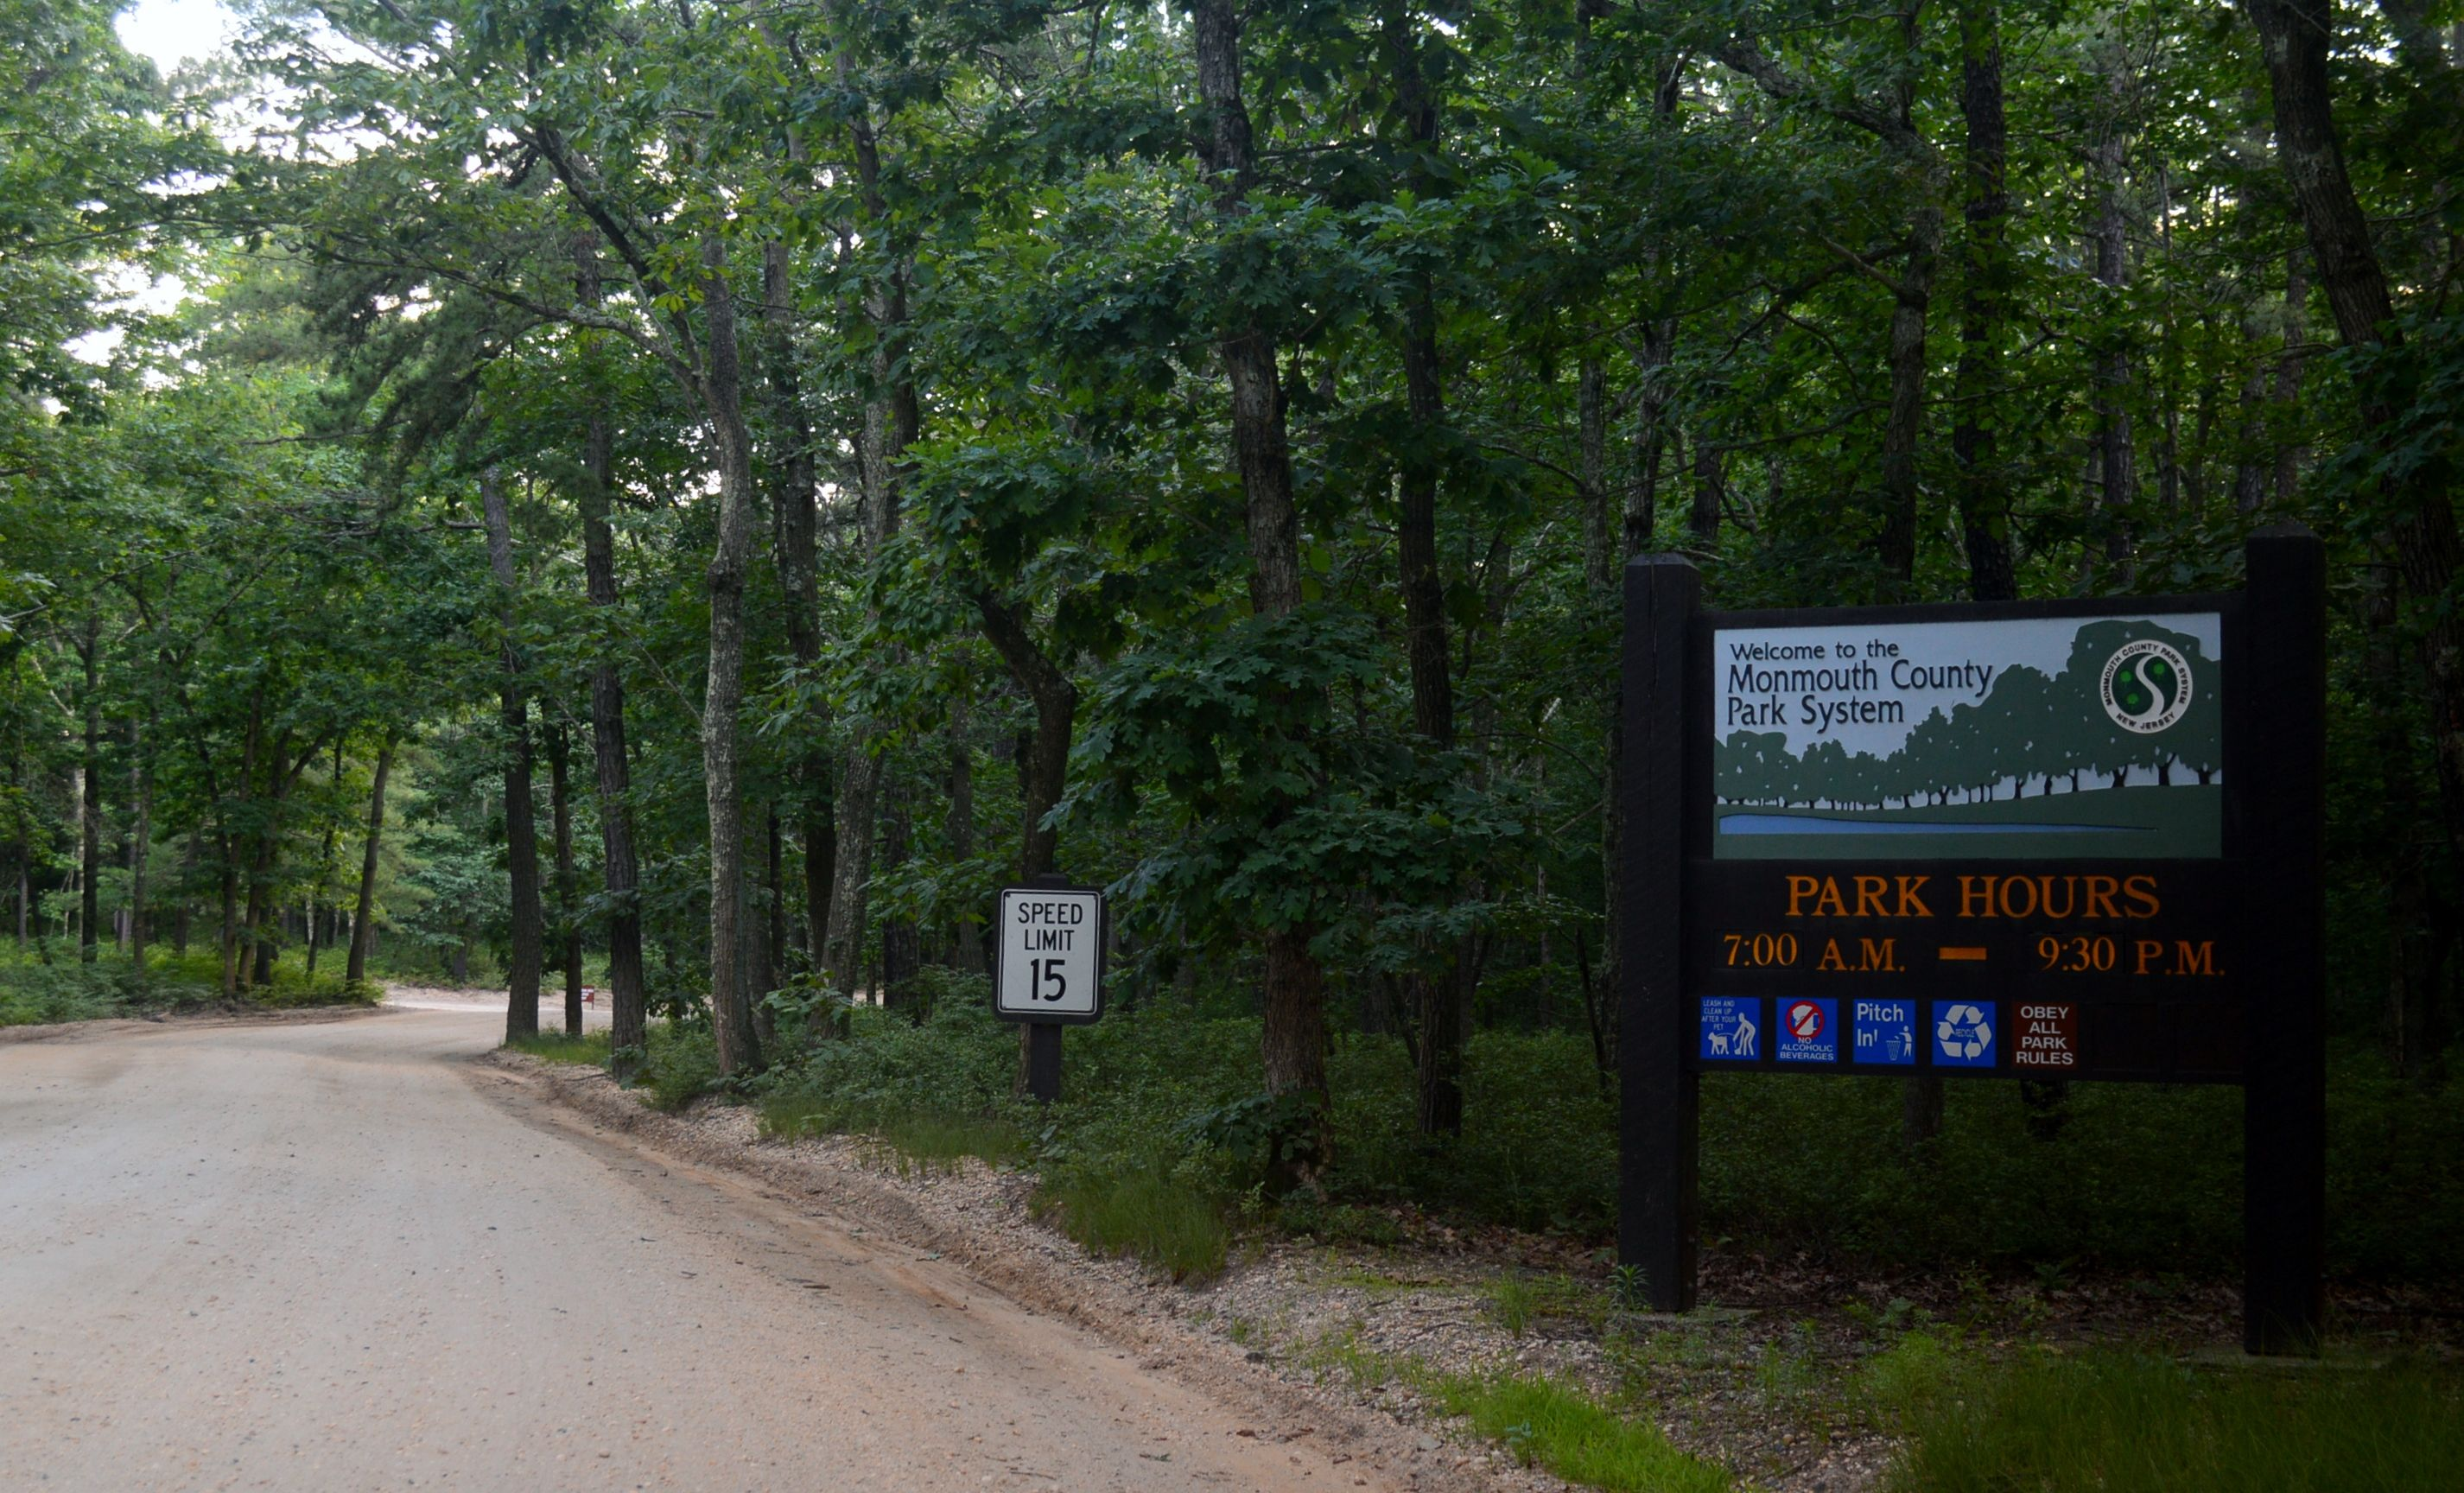 Turkey Swamp Park is part of the Monmouth County park